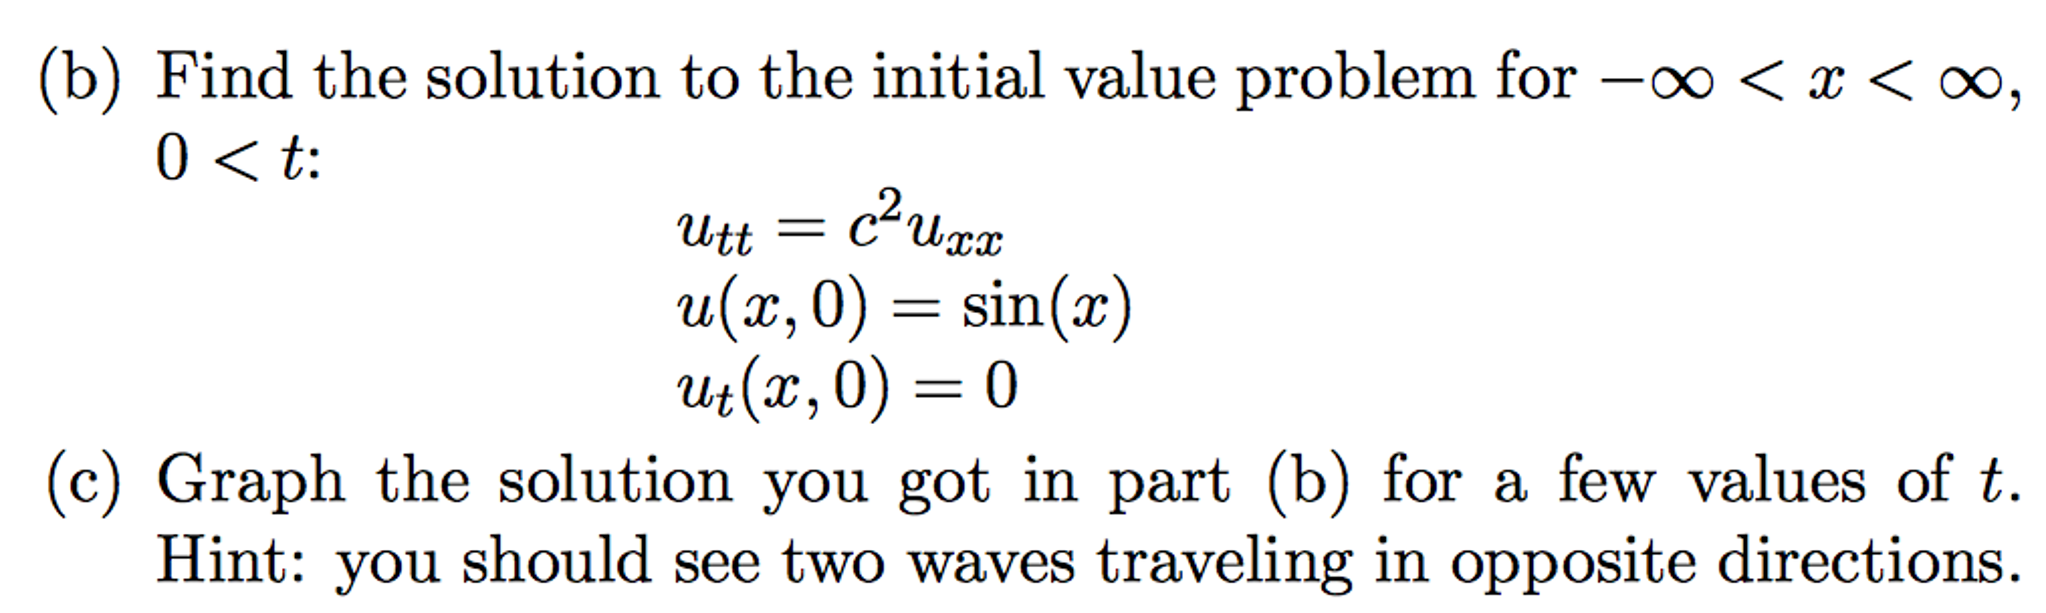 Solved: Partial Differential Equation (PDE), D'Alembert's